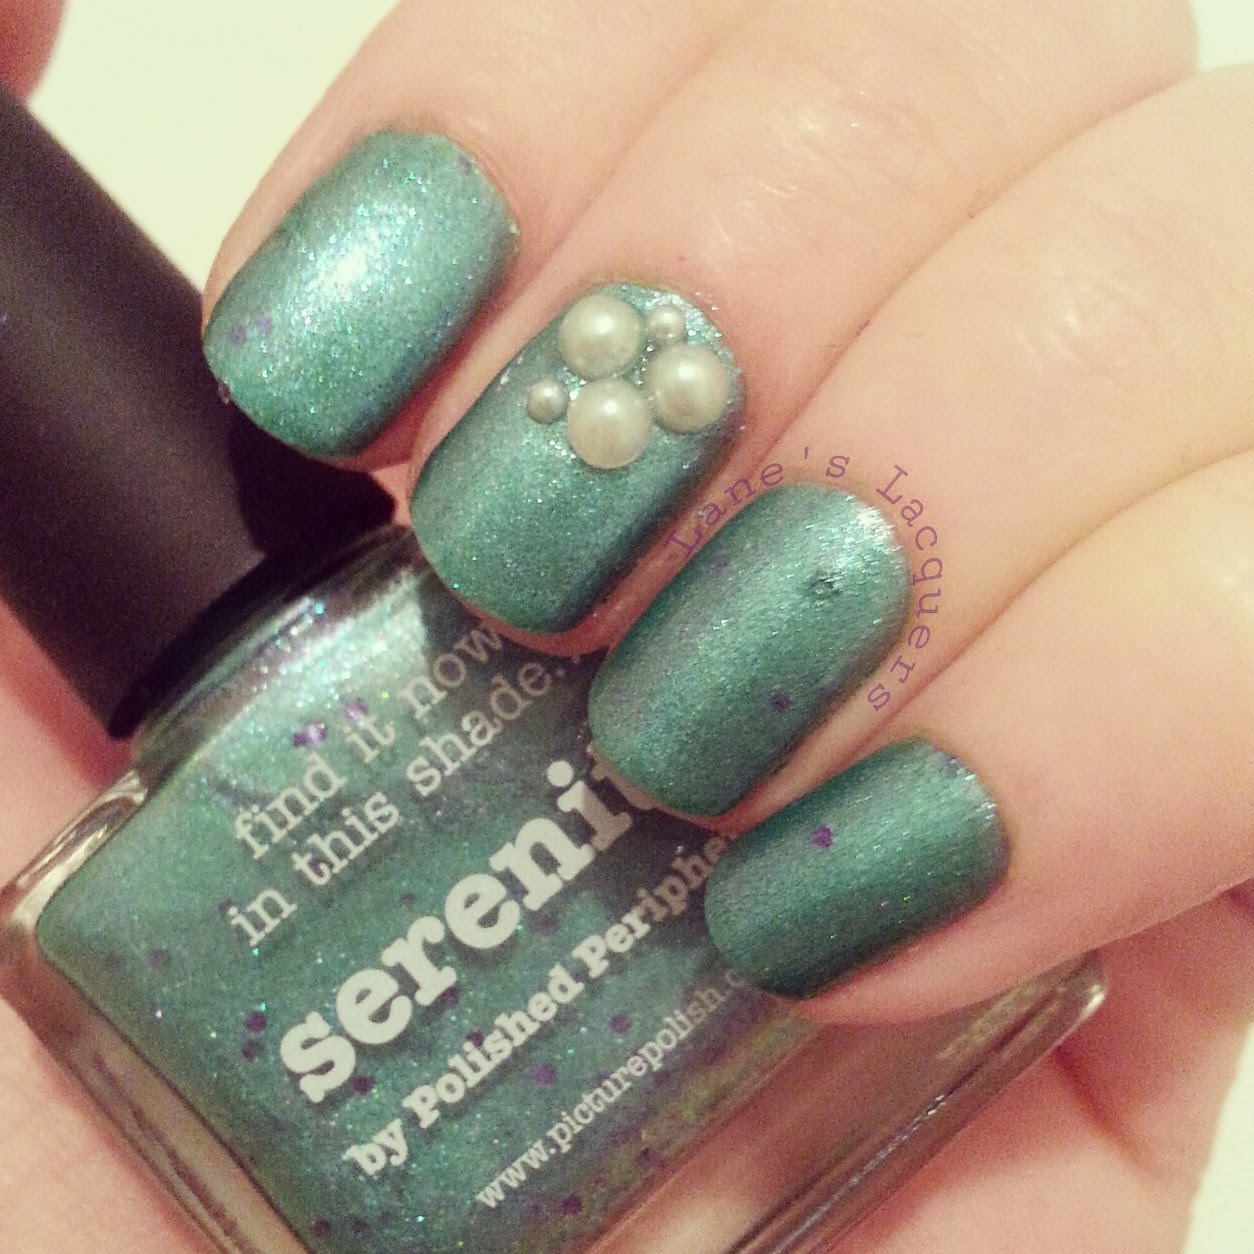 picture-polish-serentiy-and-pearls-swatch-nails